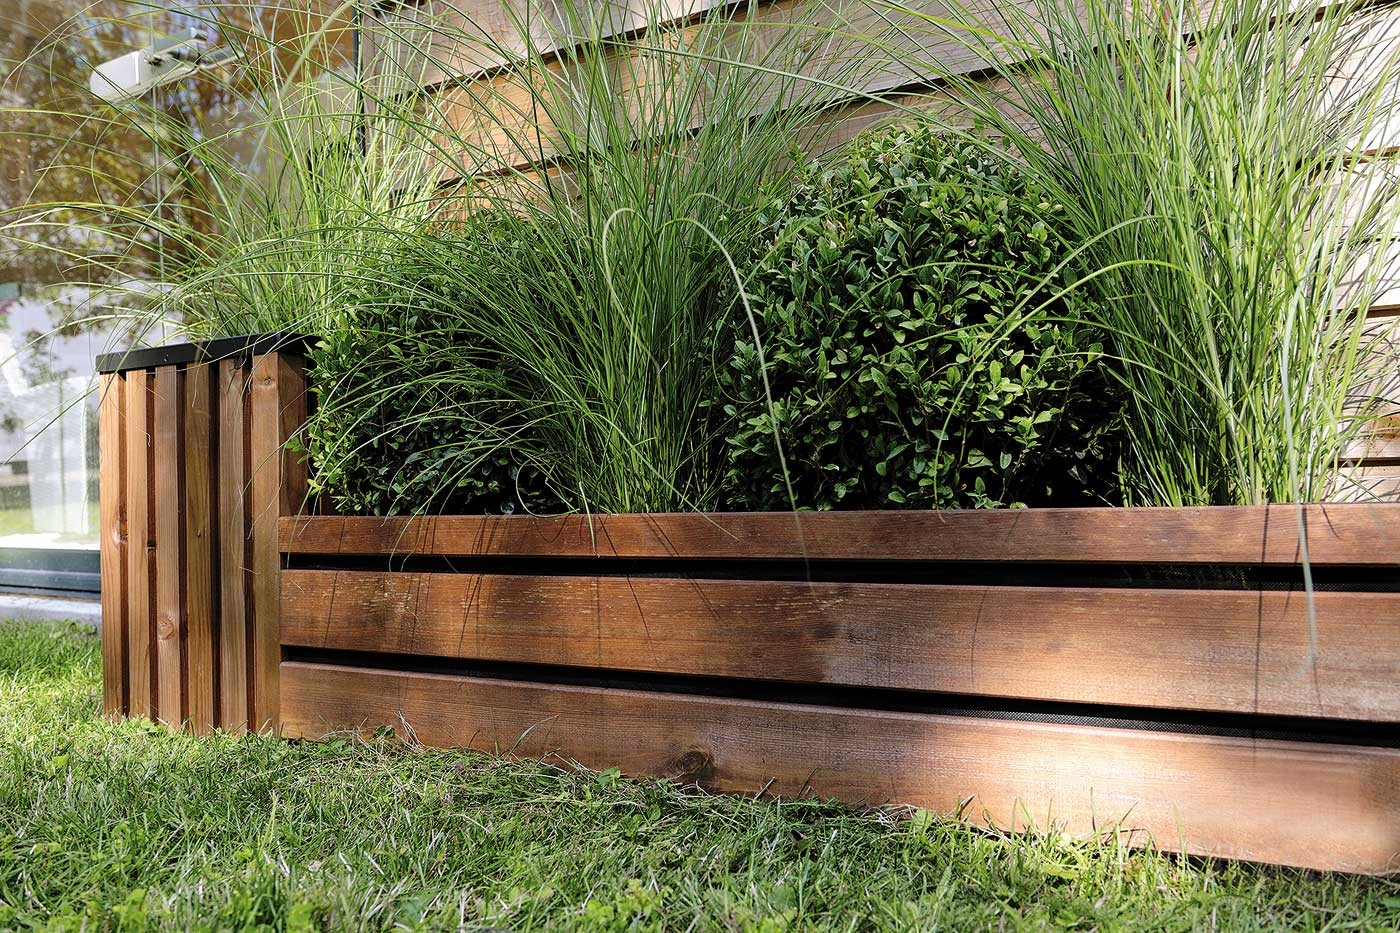 Bordure bois planter 23 43 x 100 cm for Bordure de jardin en bois brico depot